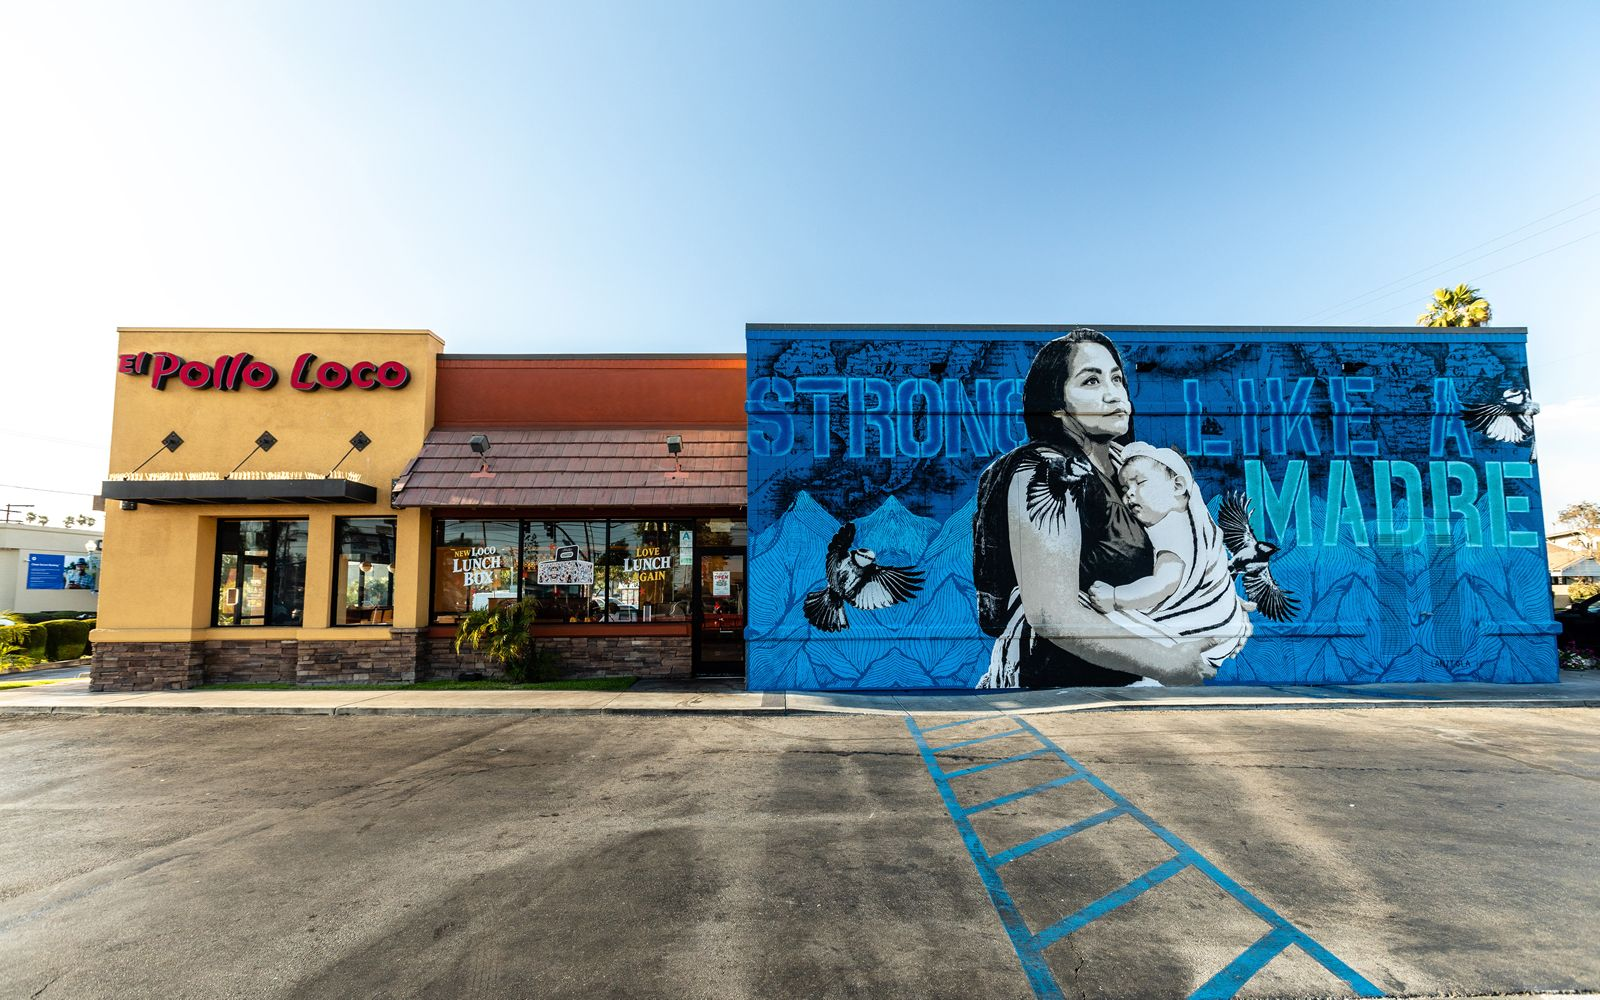 El Pollo Loco Launches Mother's Day 'Strong Like A Madre' Grant Initiative to Help Moms Pursue Their Dreams